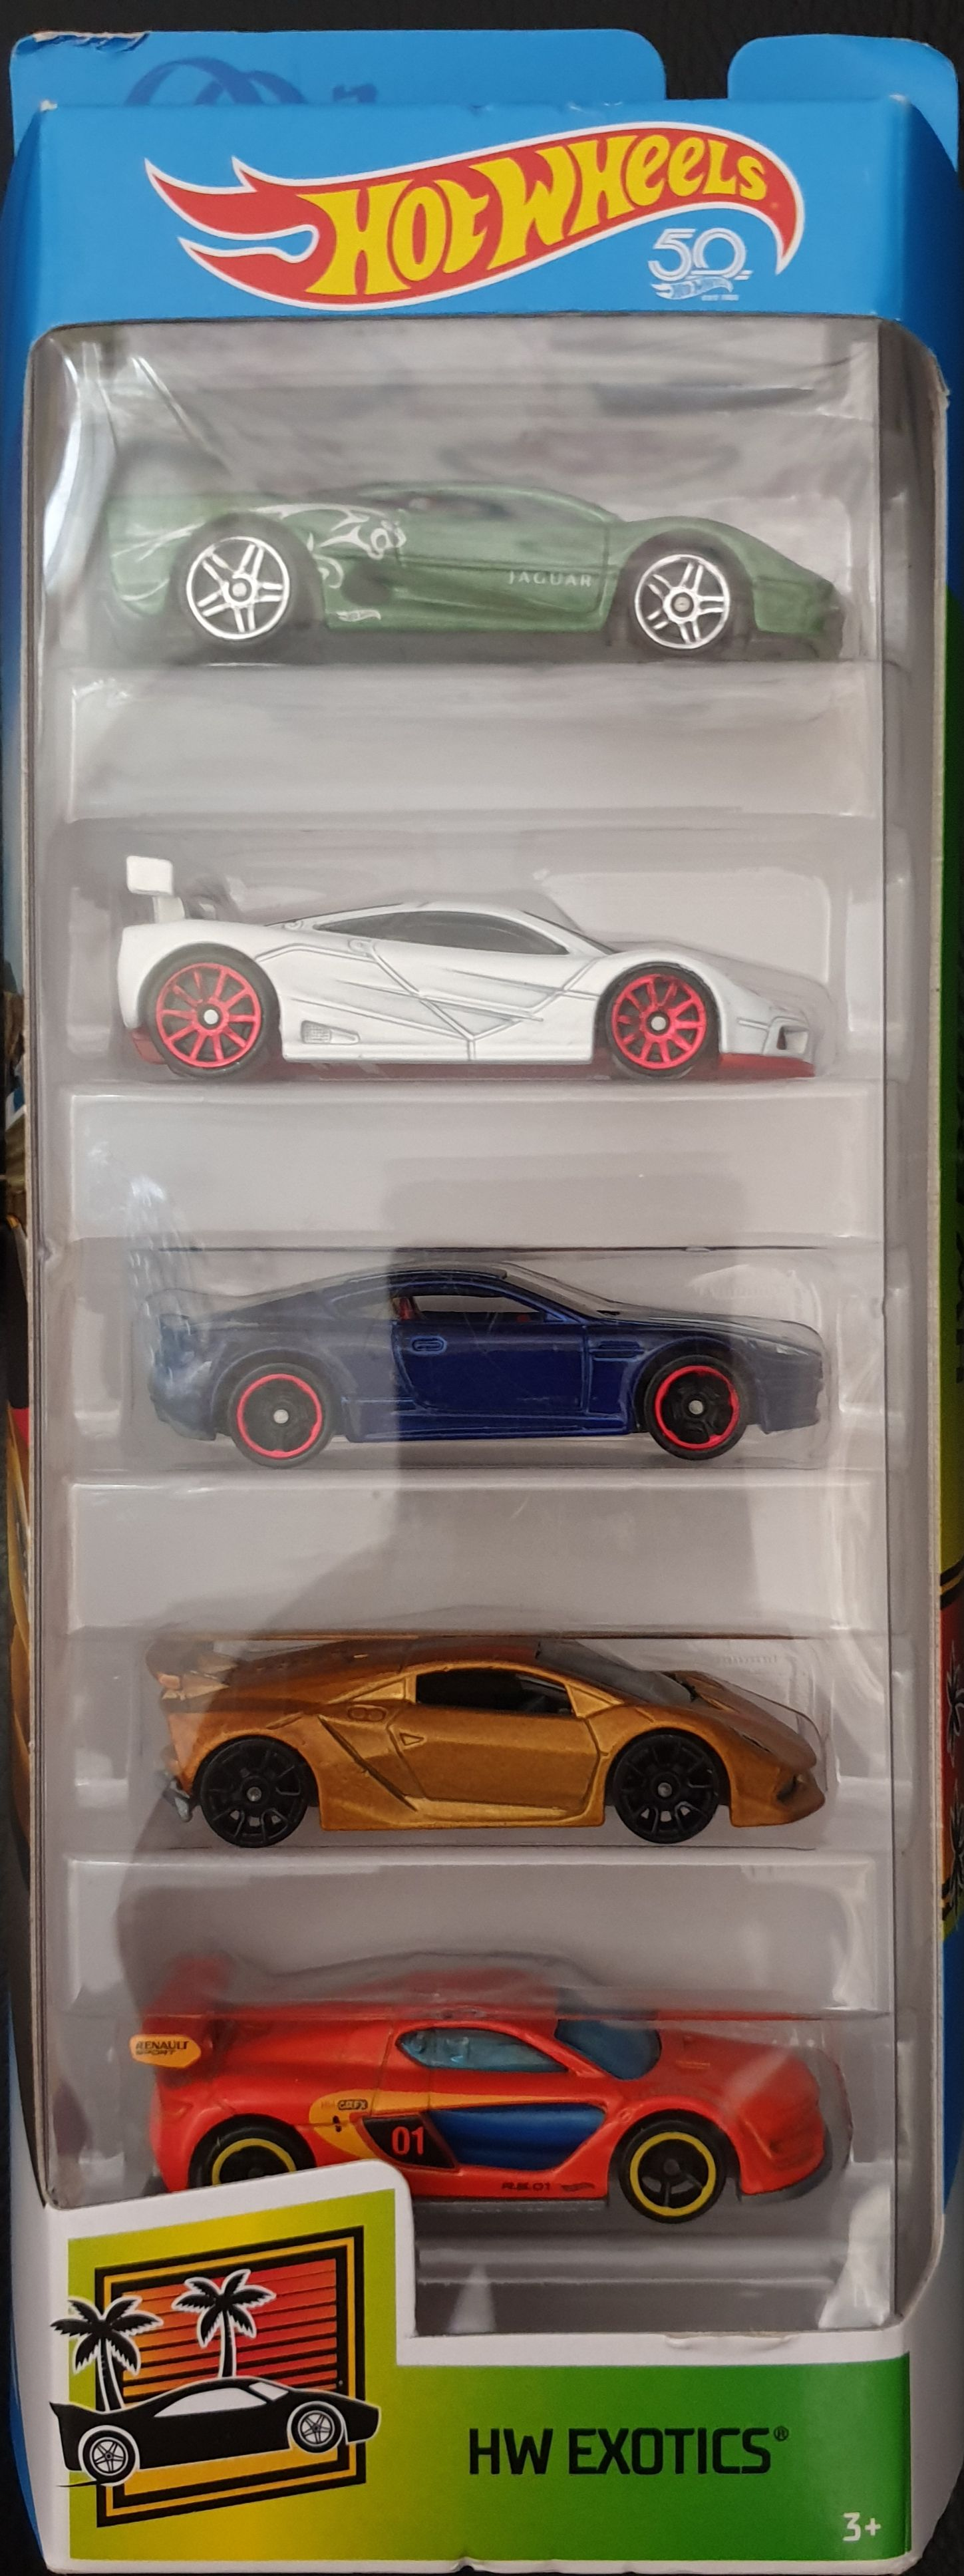 2018 HW Exotics 5 Pack : Renault Sport R.S. 01 Toy Car, Die Cast, And Hot Wheels (2018) back image (back cover, second image)